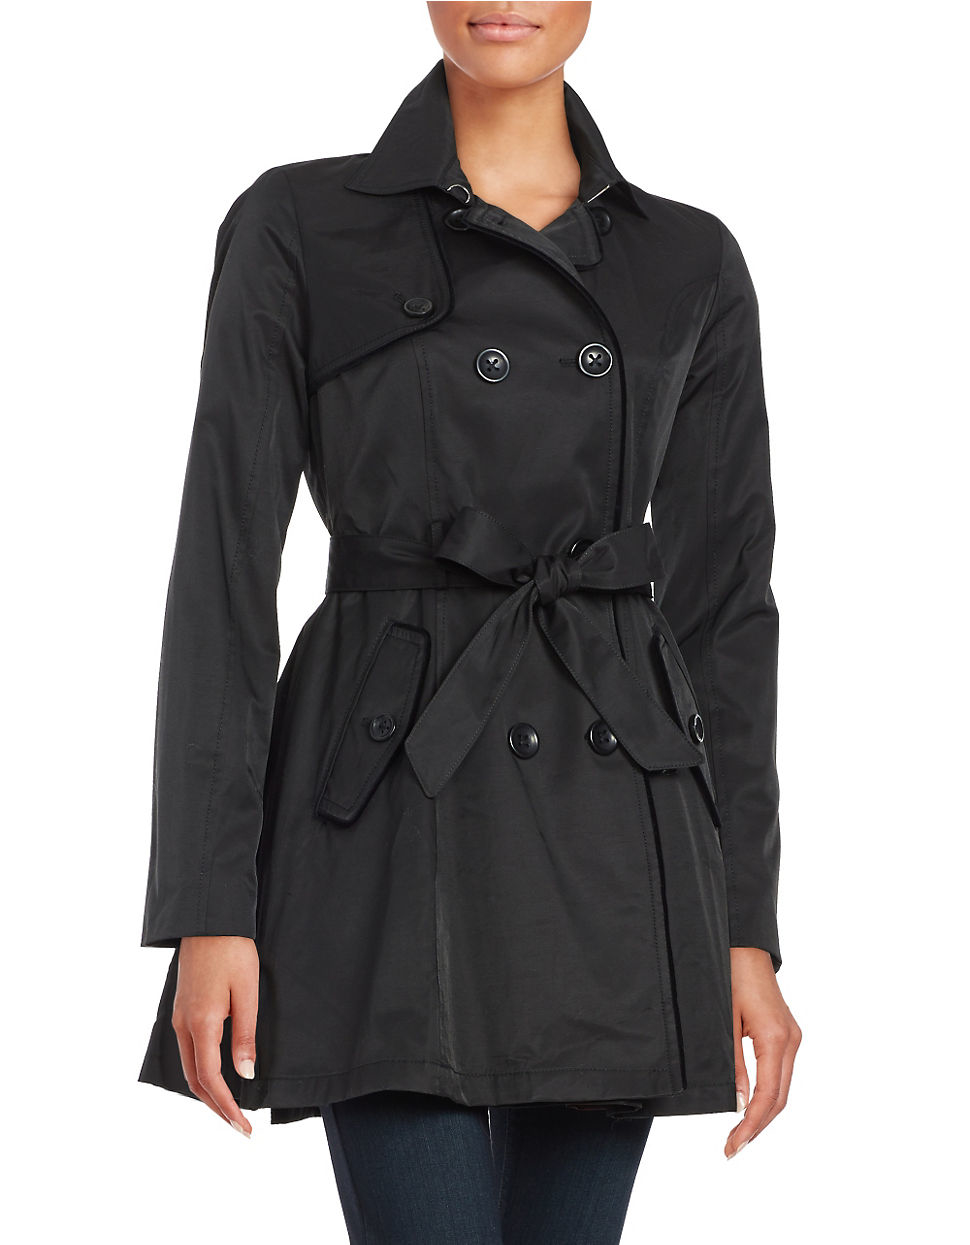 Women's Raincoats, Rain Jackets, & Trench Coats. Make rainy days a little brighter with a women's raincoat from Belk. Choose between long trench coats and short rain jackets for a look you love.